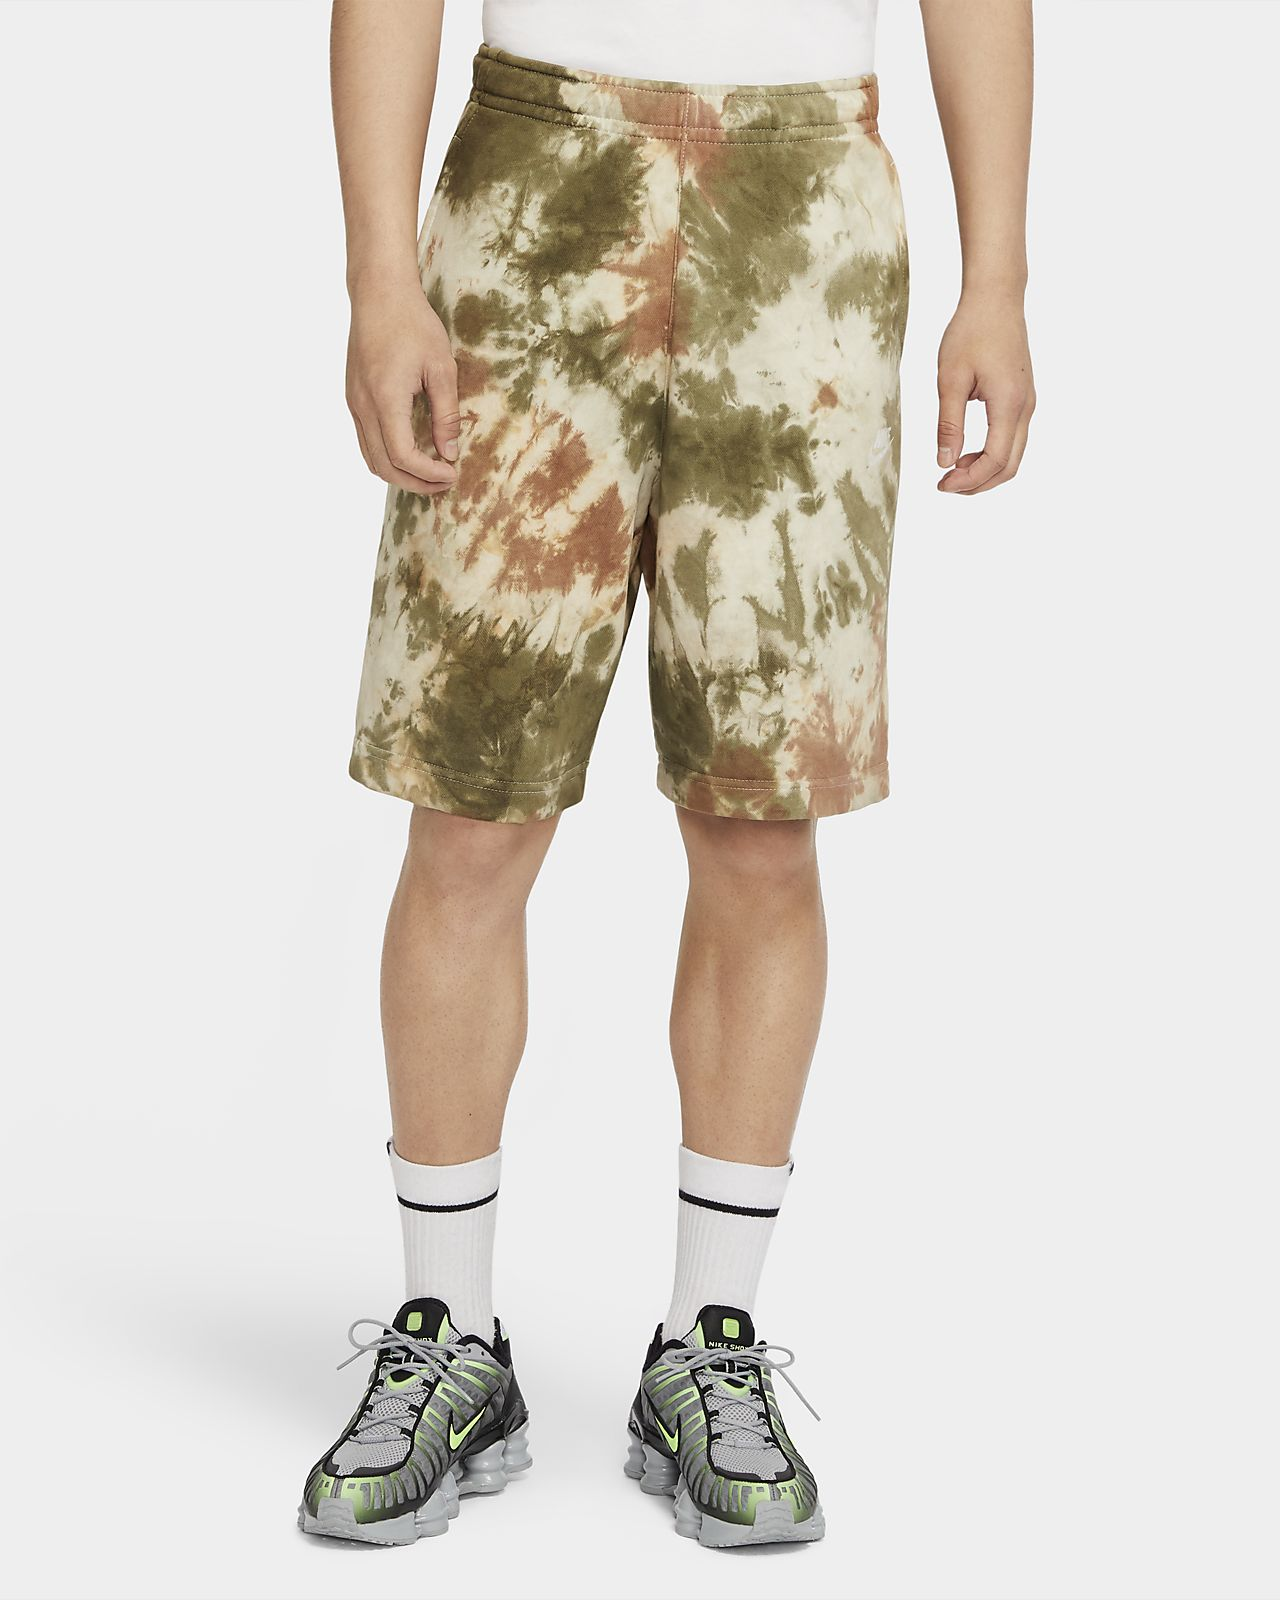 Nike Sportswear Men's French Terry Shorts